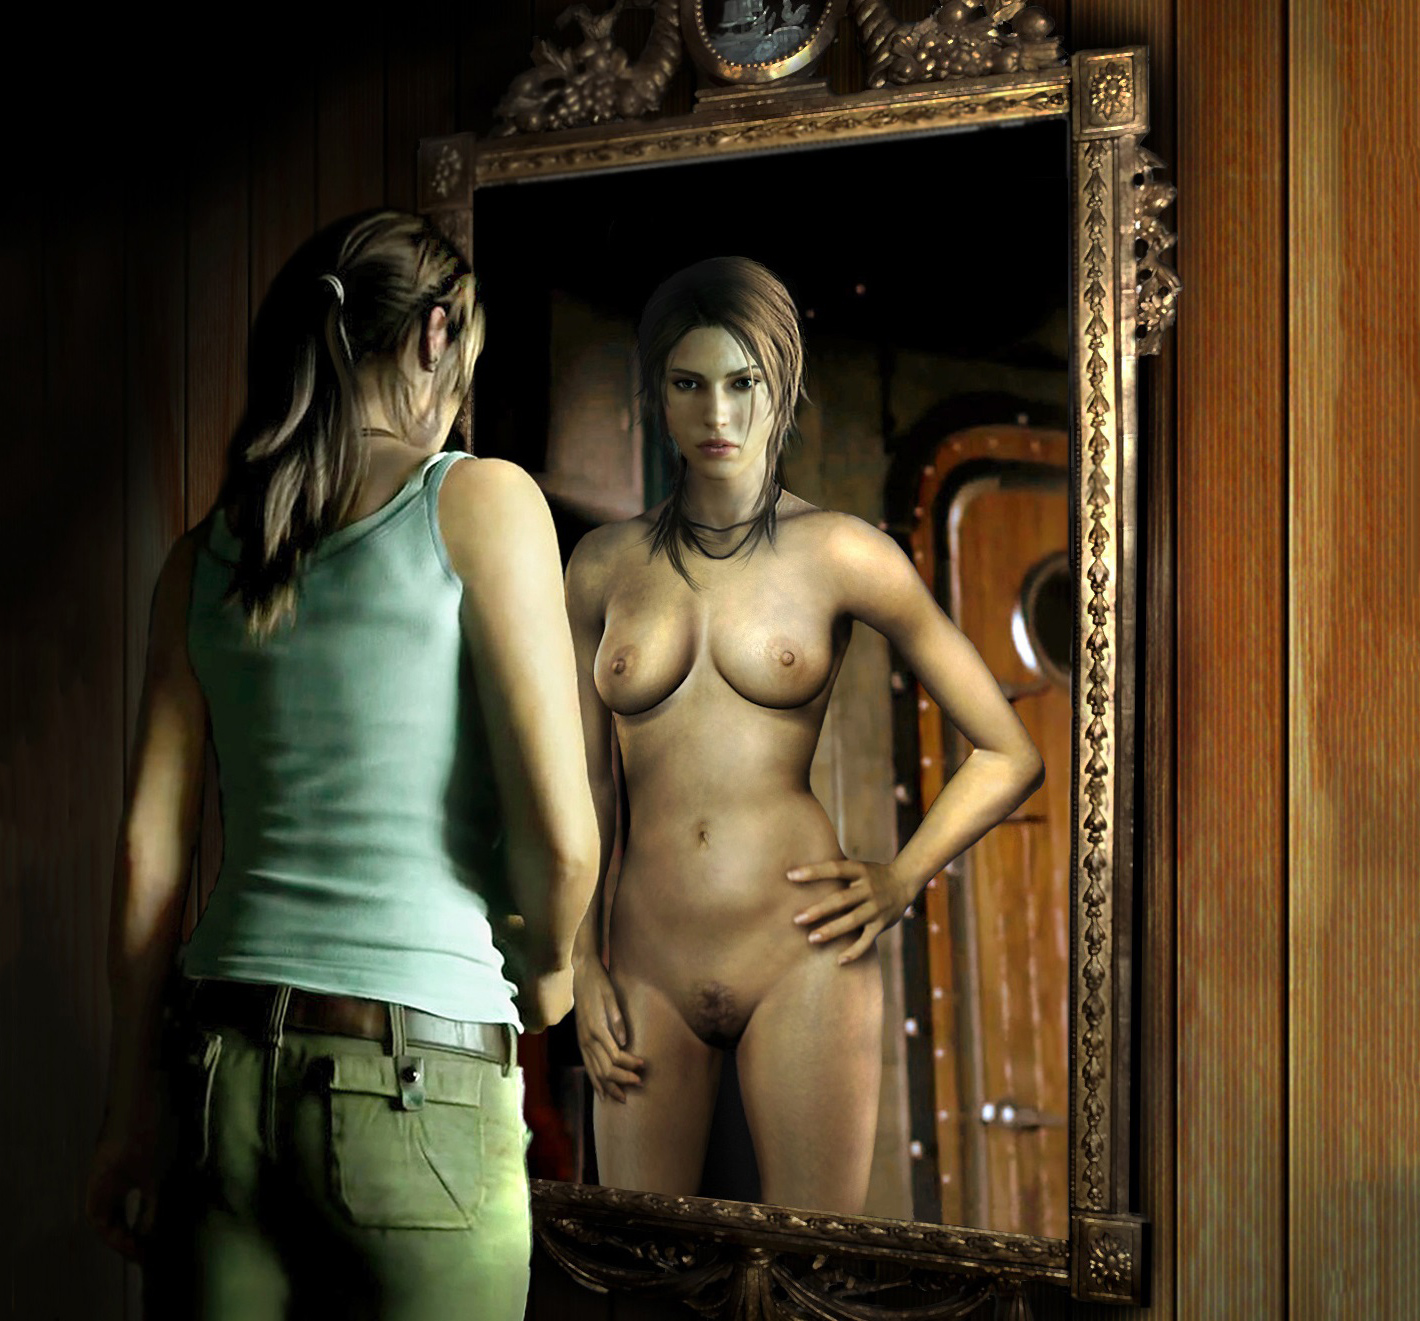 Tomb raider 5 nude patch hentai video